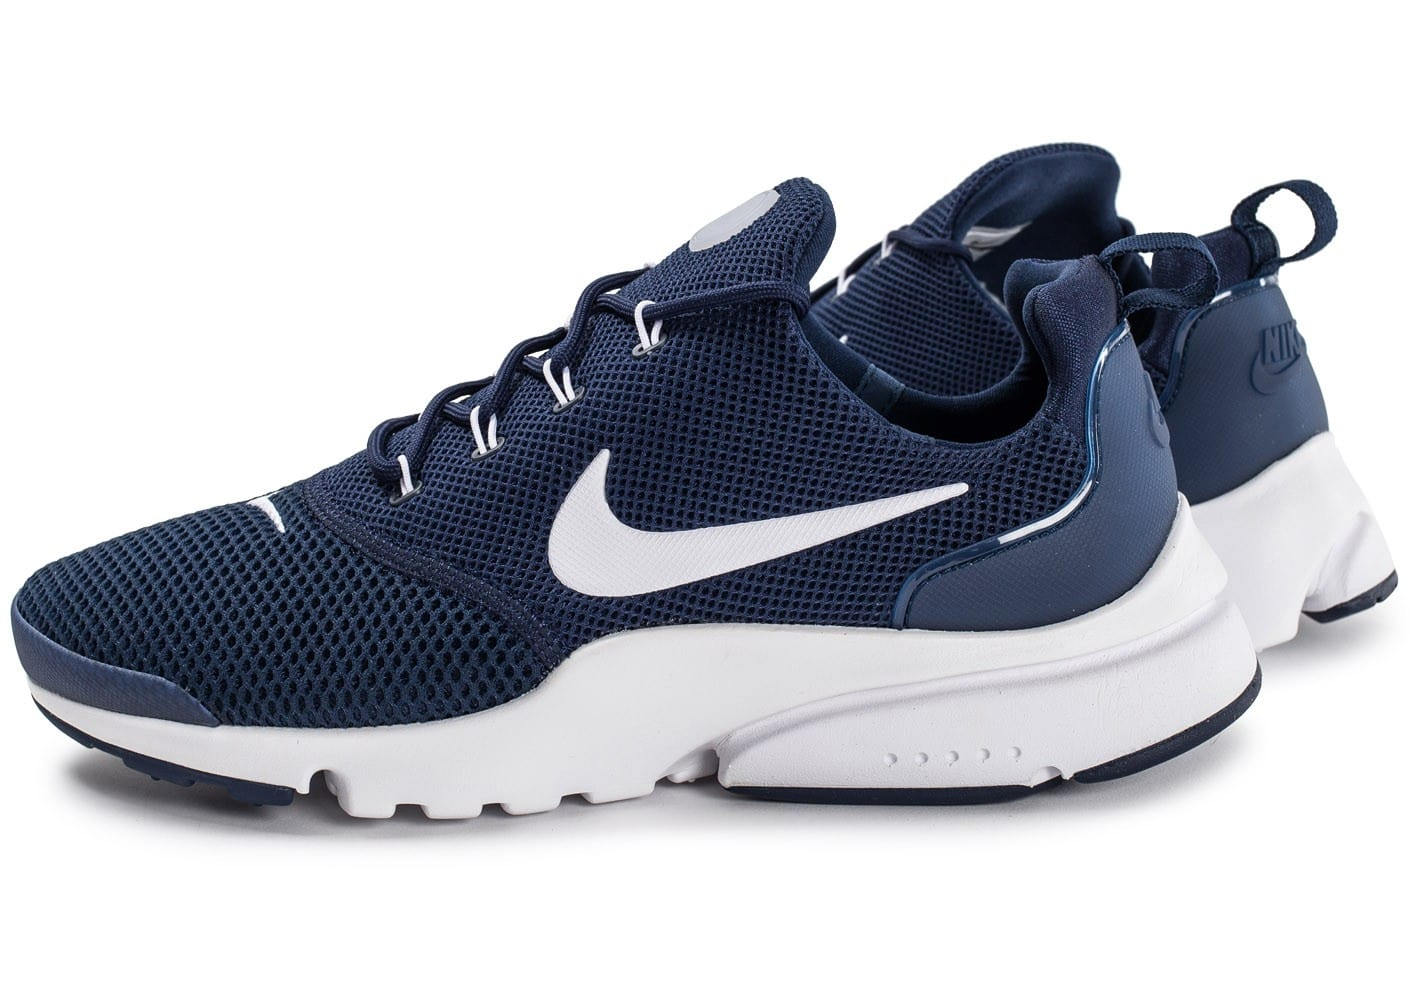 nike presto fly bleu marine chaussures baskets homme chausport. Black Bedroom Furniture Sets. Home Design Ideas